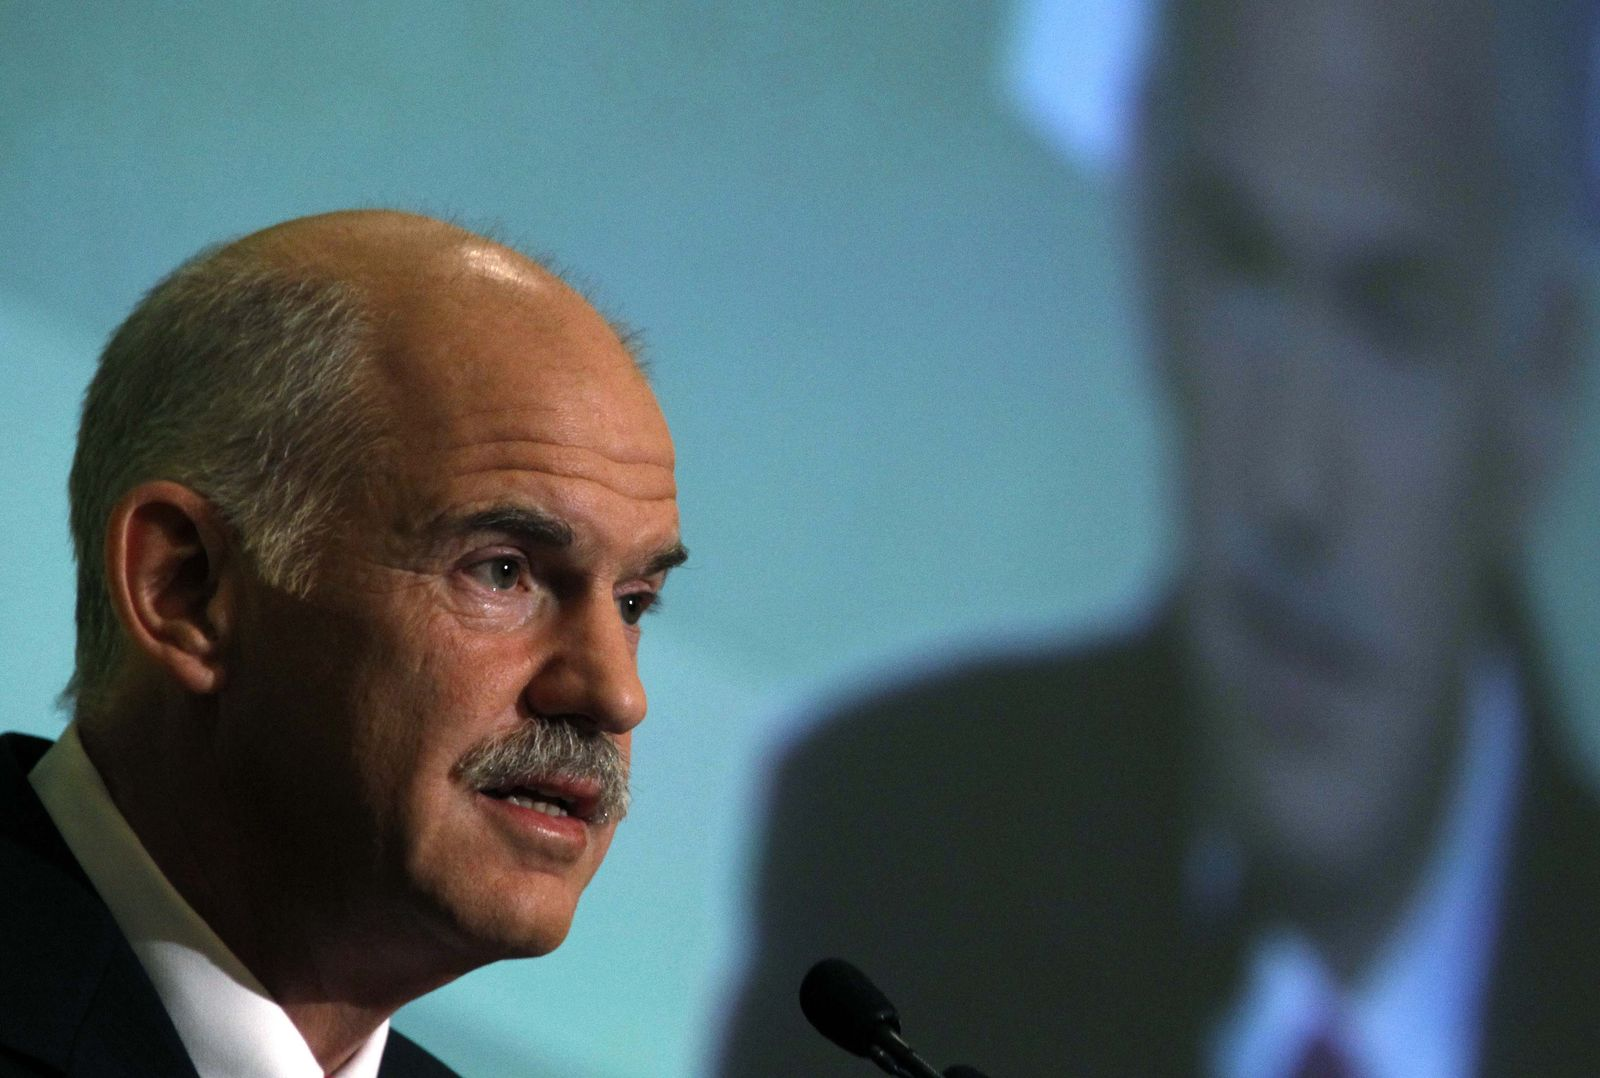 GREECE-PAPANDREOU/